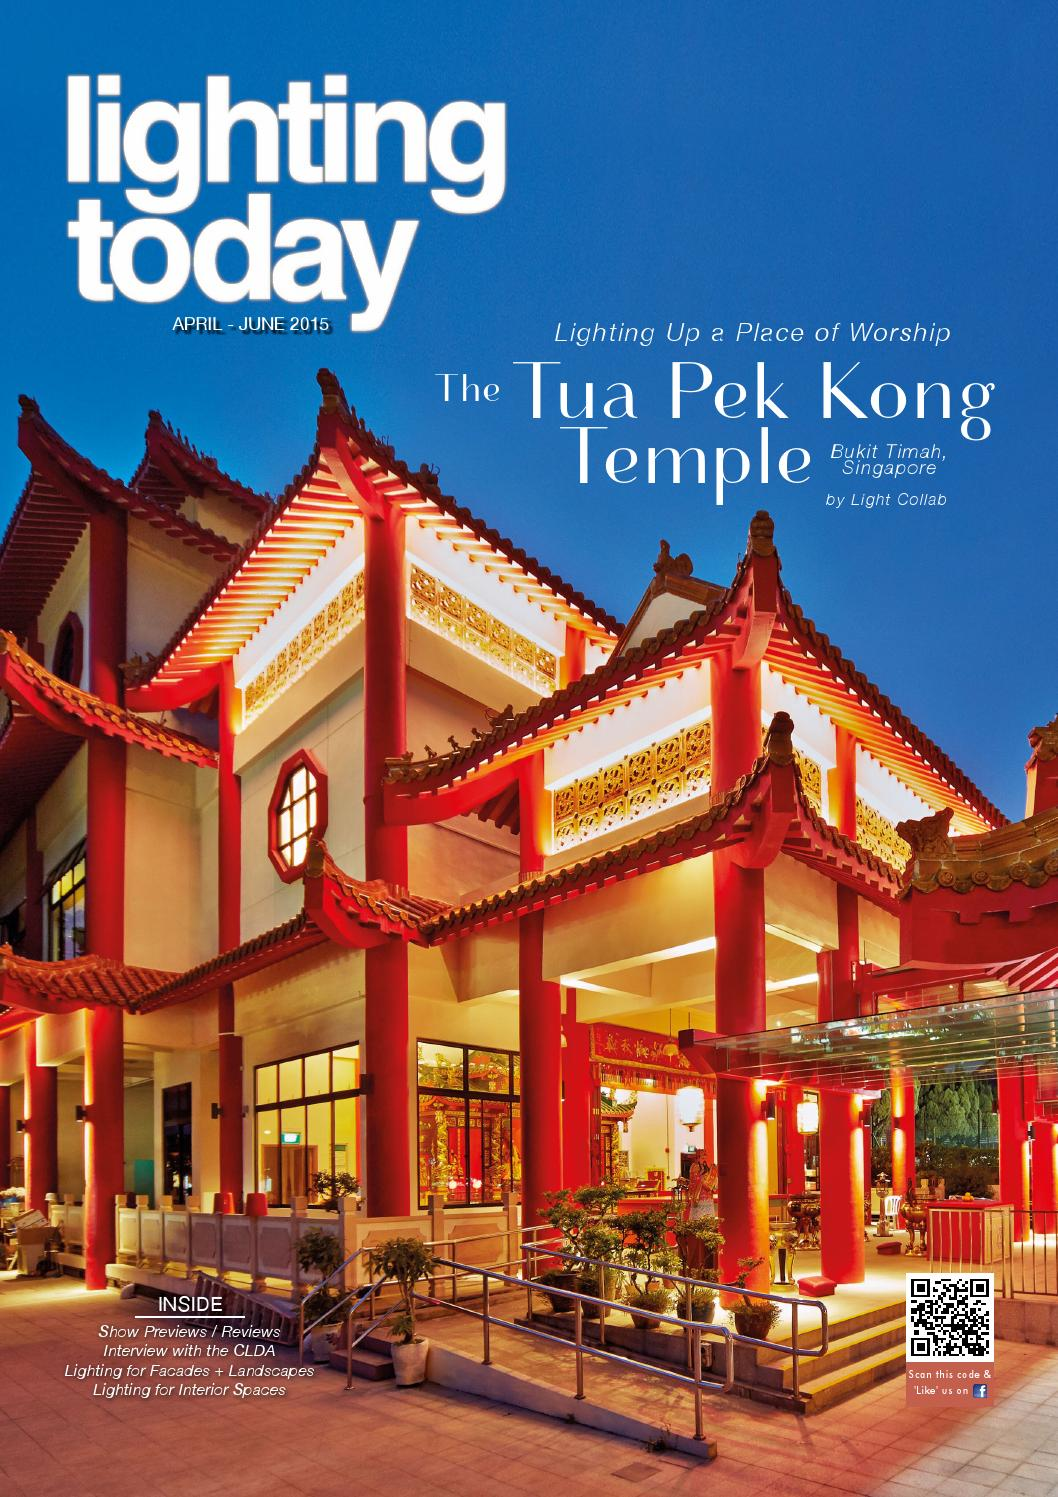 Lighting Today Vol 2 2015 By Issuu How To Control And Reap The Benefits Of Hid Lamps Content